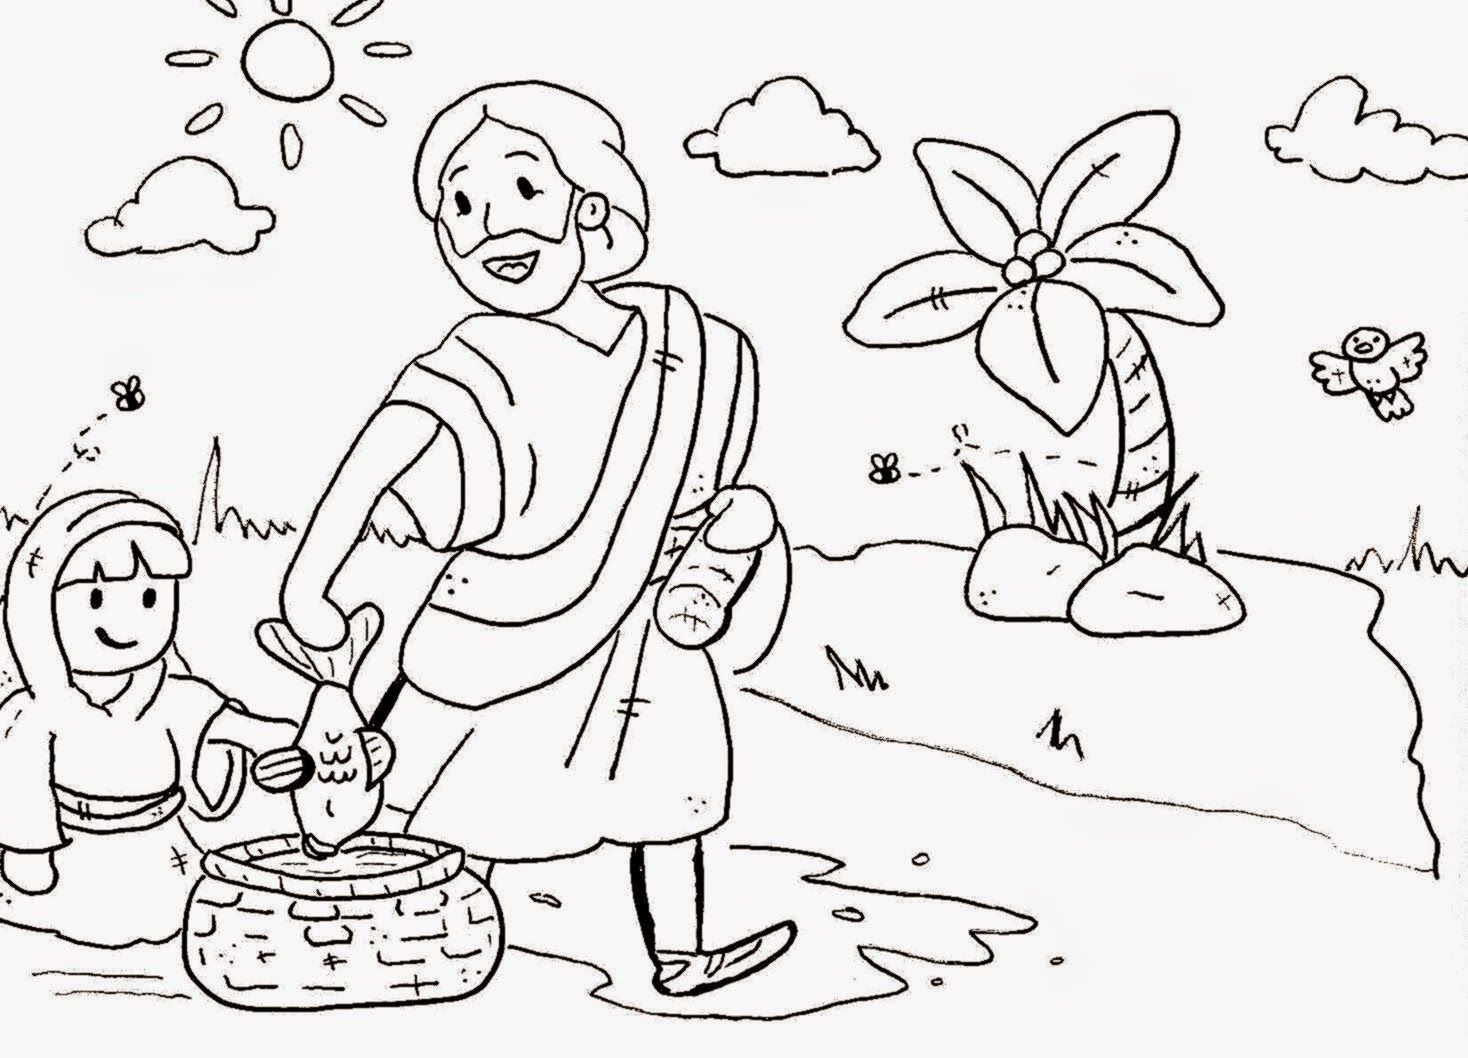 - Coloring Free Sunday School Coloring Pages Creation Sunday School